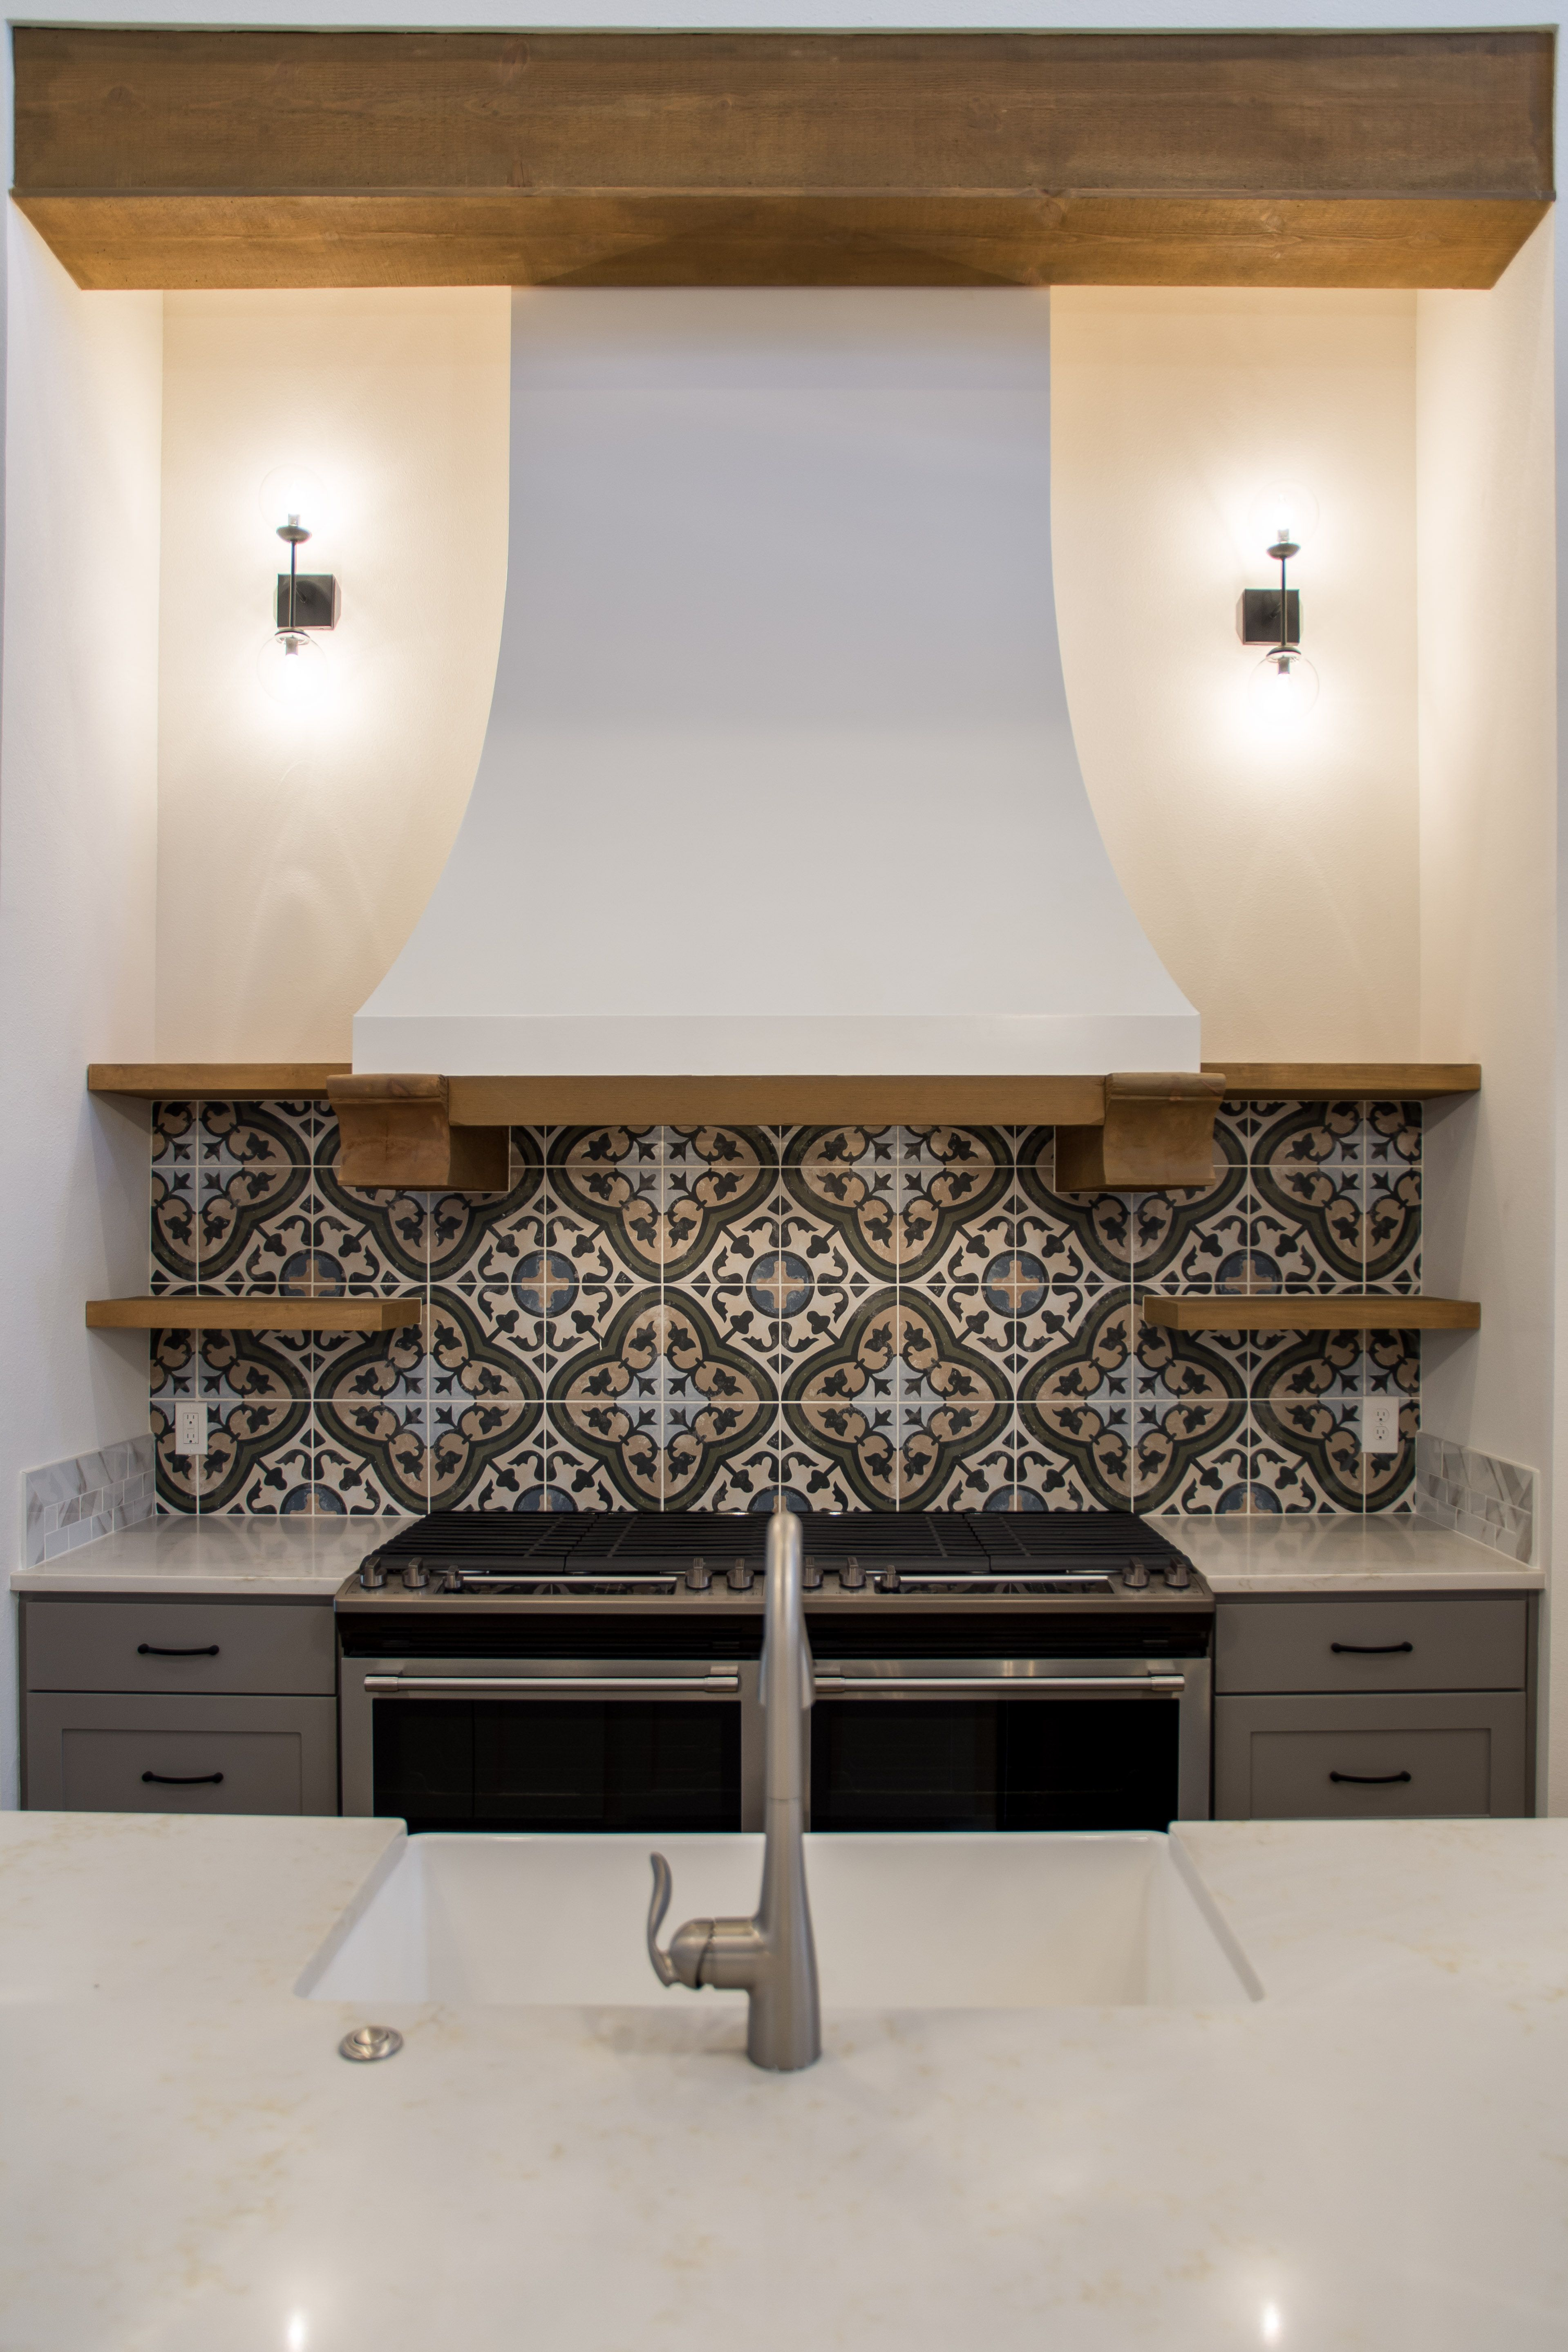 Kitchen Design With Mediterranean Inspired Details Cement Tile Backsplash Wood Accents By Ventura Homes In Lubbock Texas Mediterranean Tile Backsplash